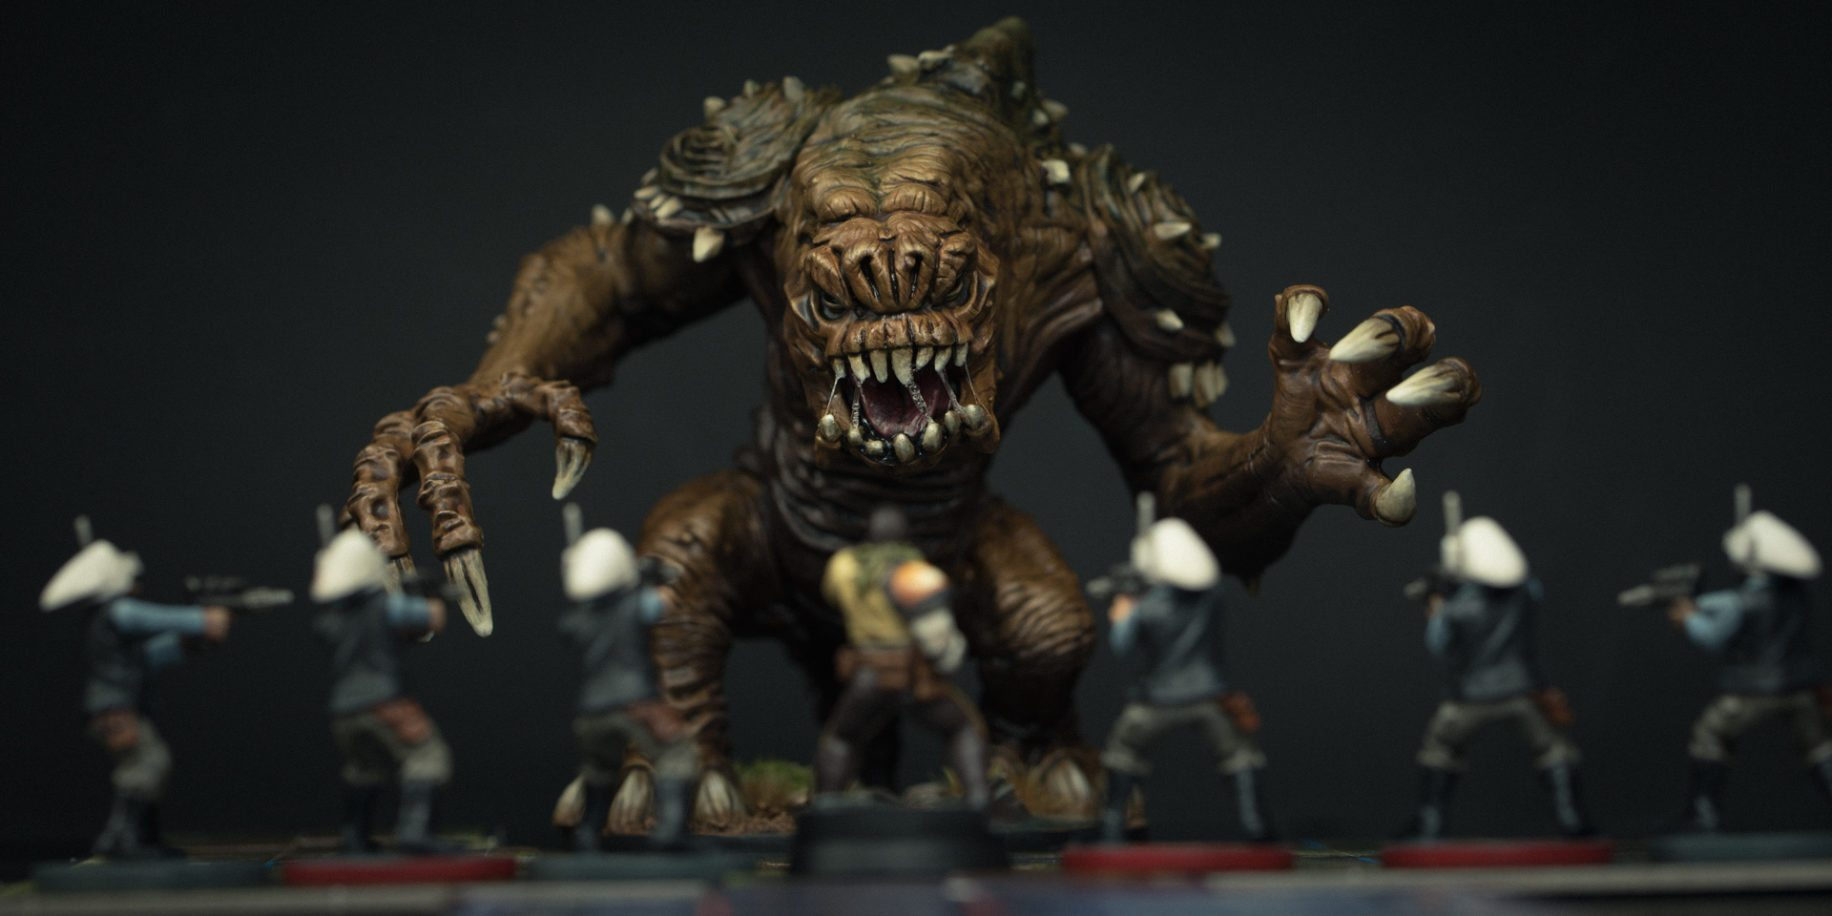 Rancor monster